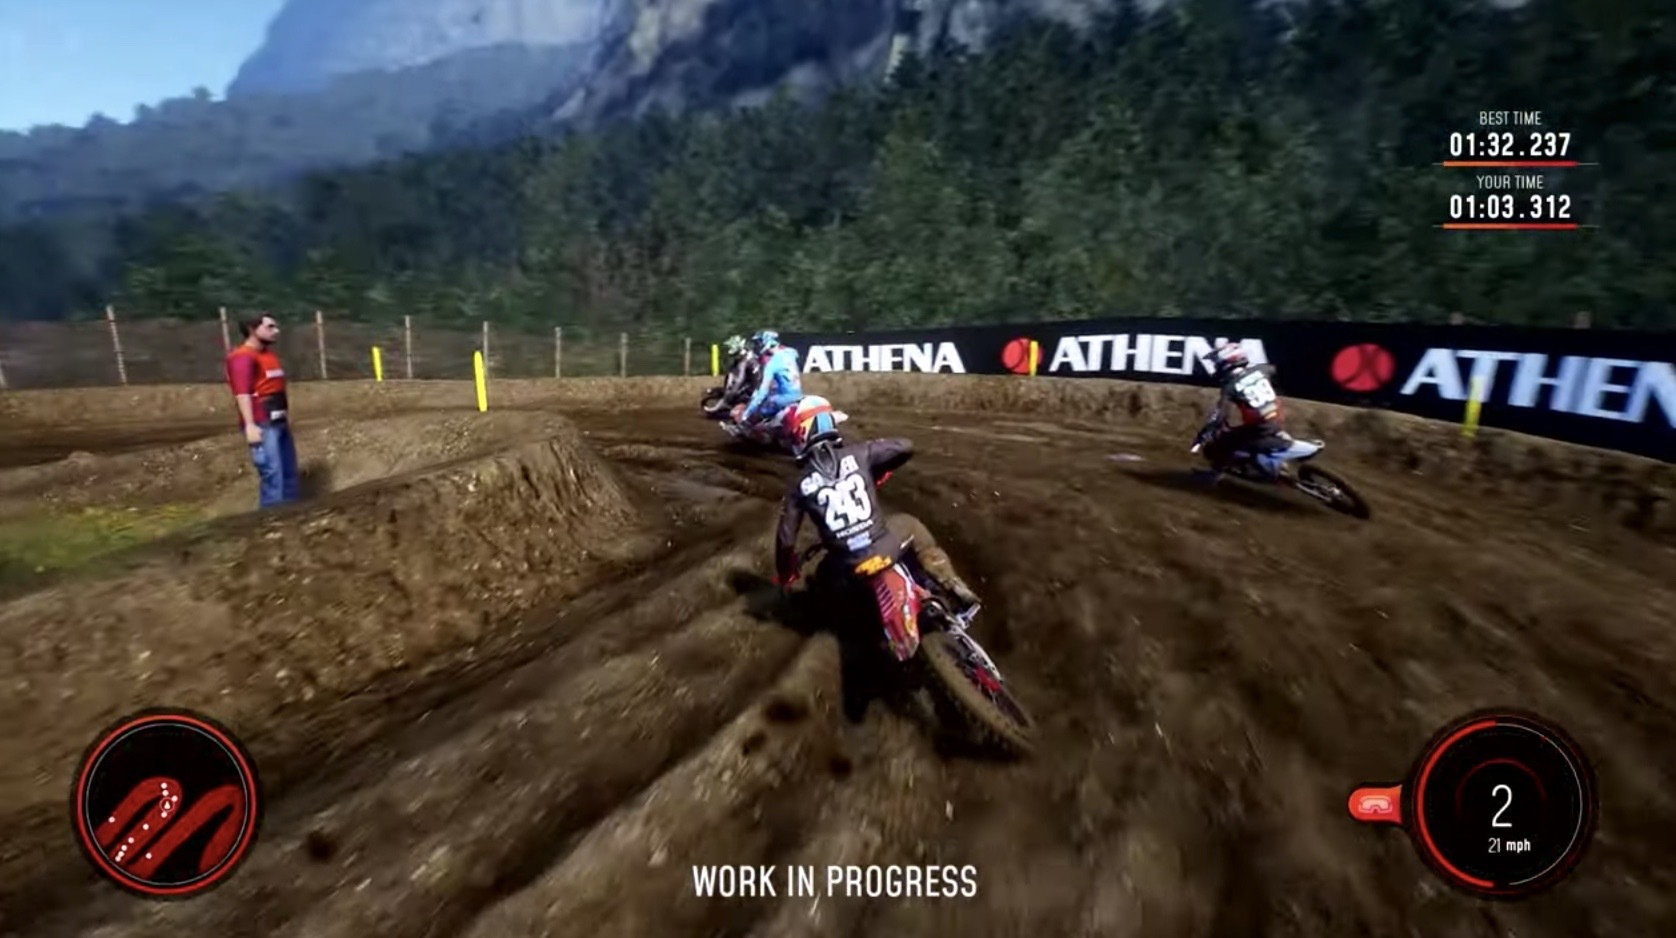 MXGP 2019: The Official Video Game - Gameplay Trailer